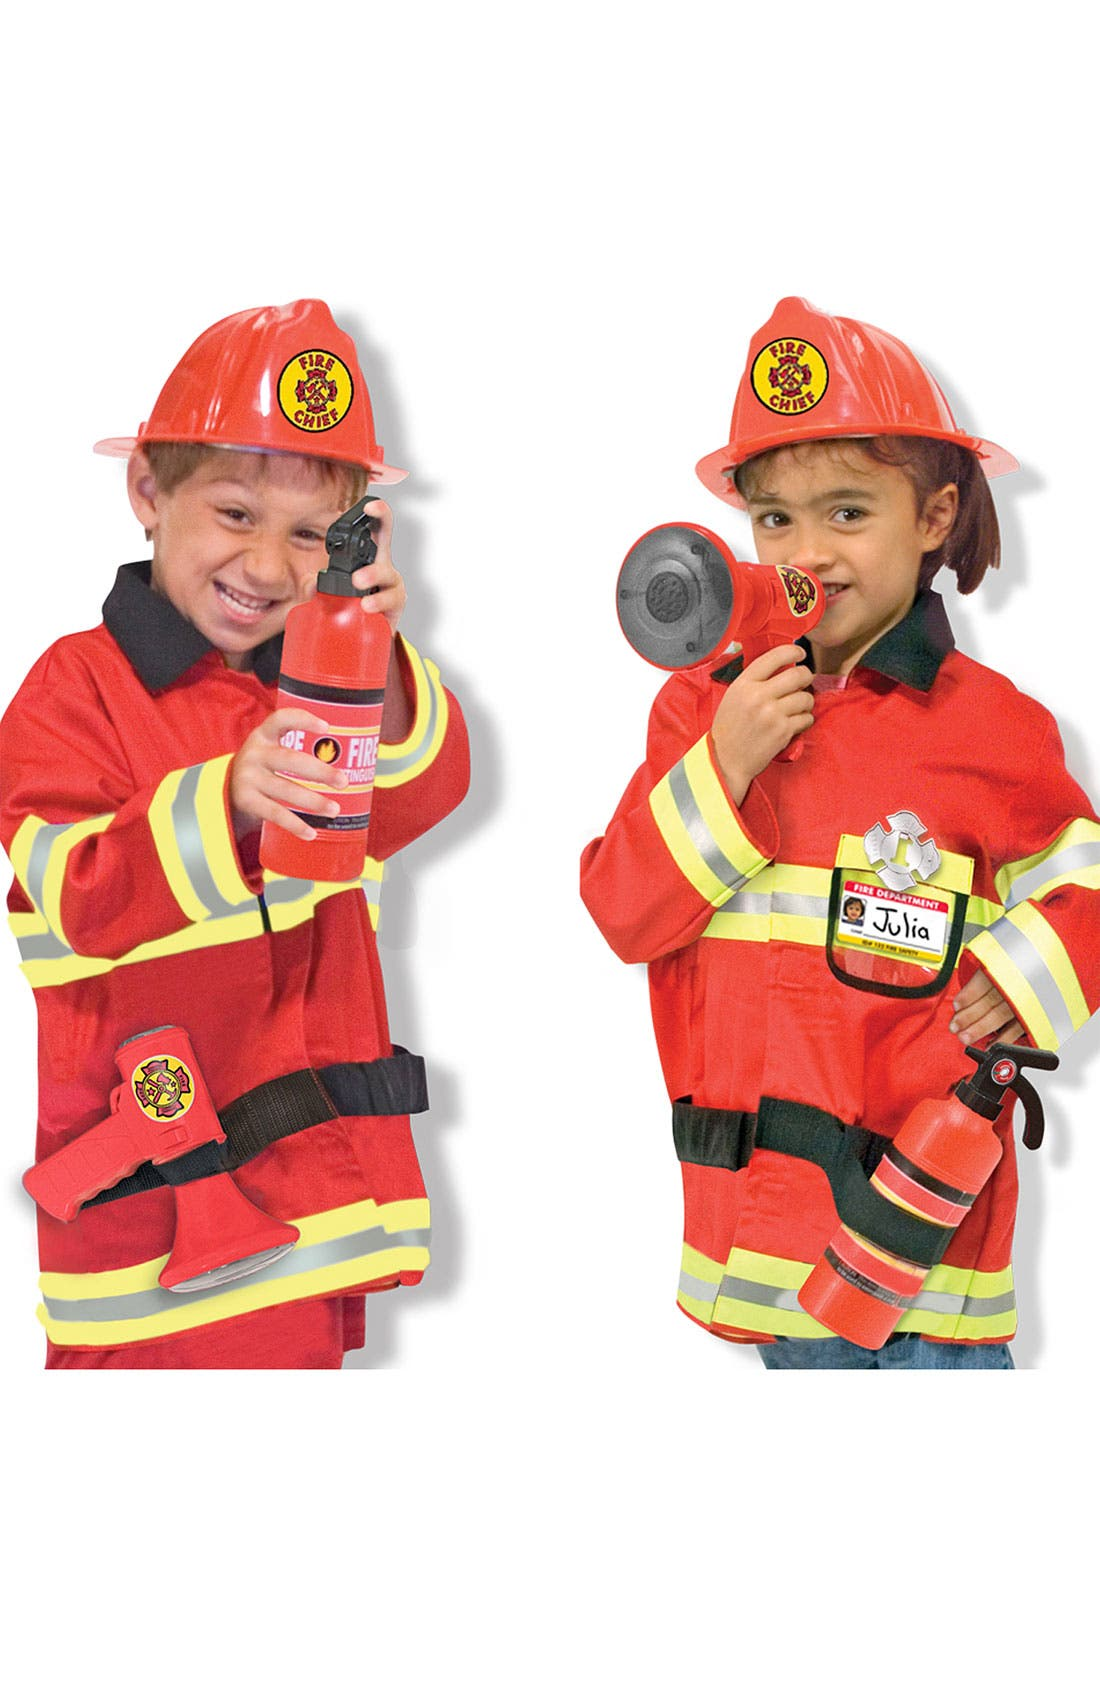 Alternate Image 1 Selected - Melissa & Doug 'Fire Chief' Costume (Toddler)